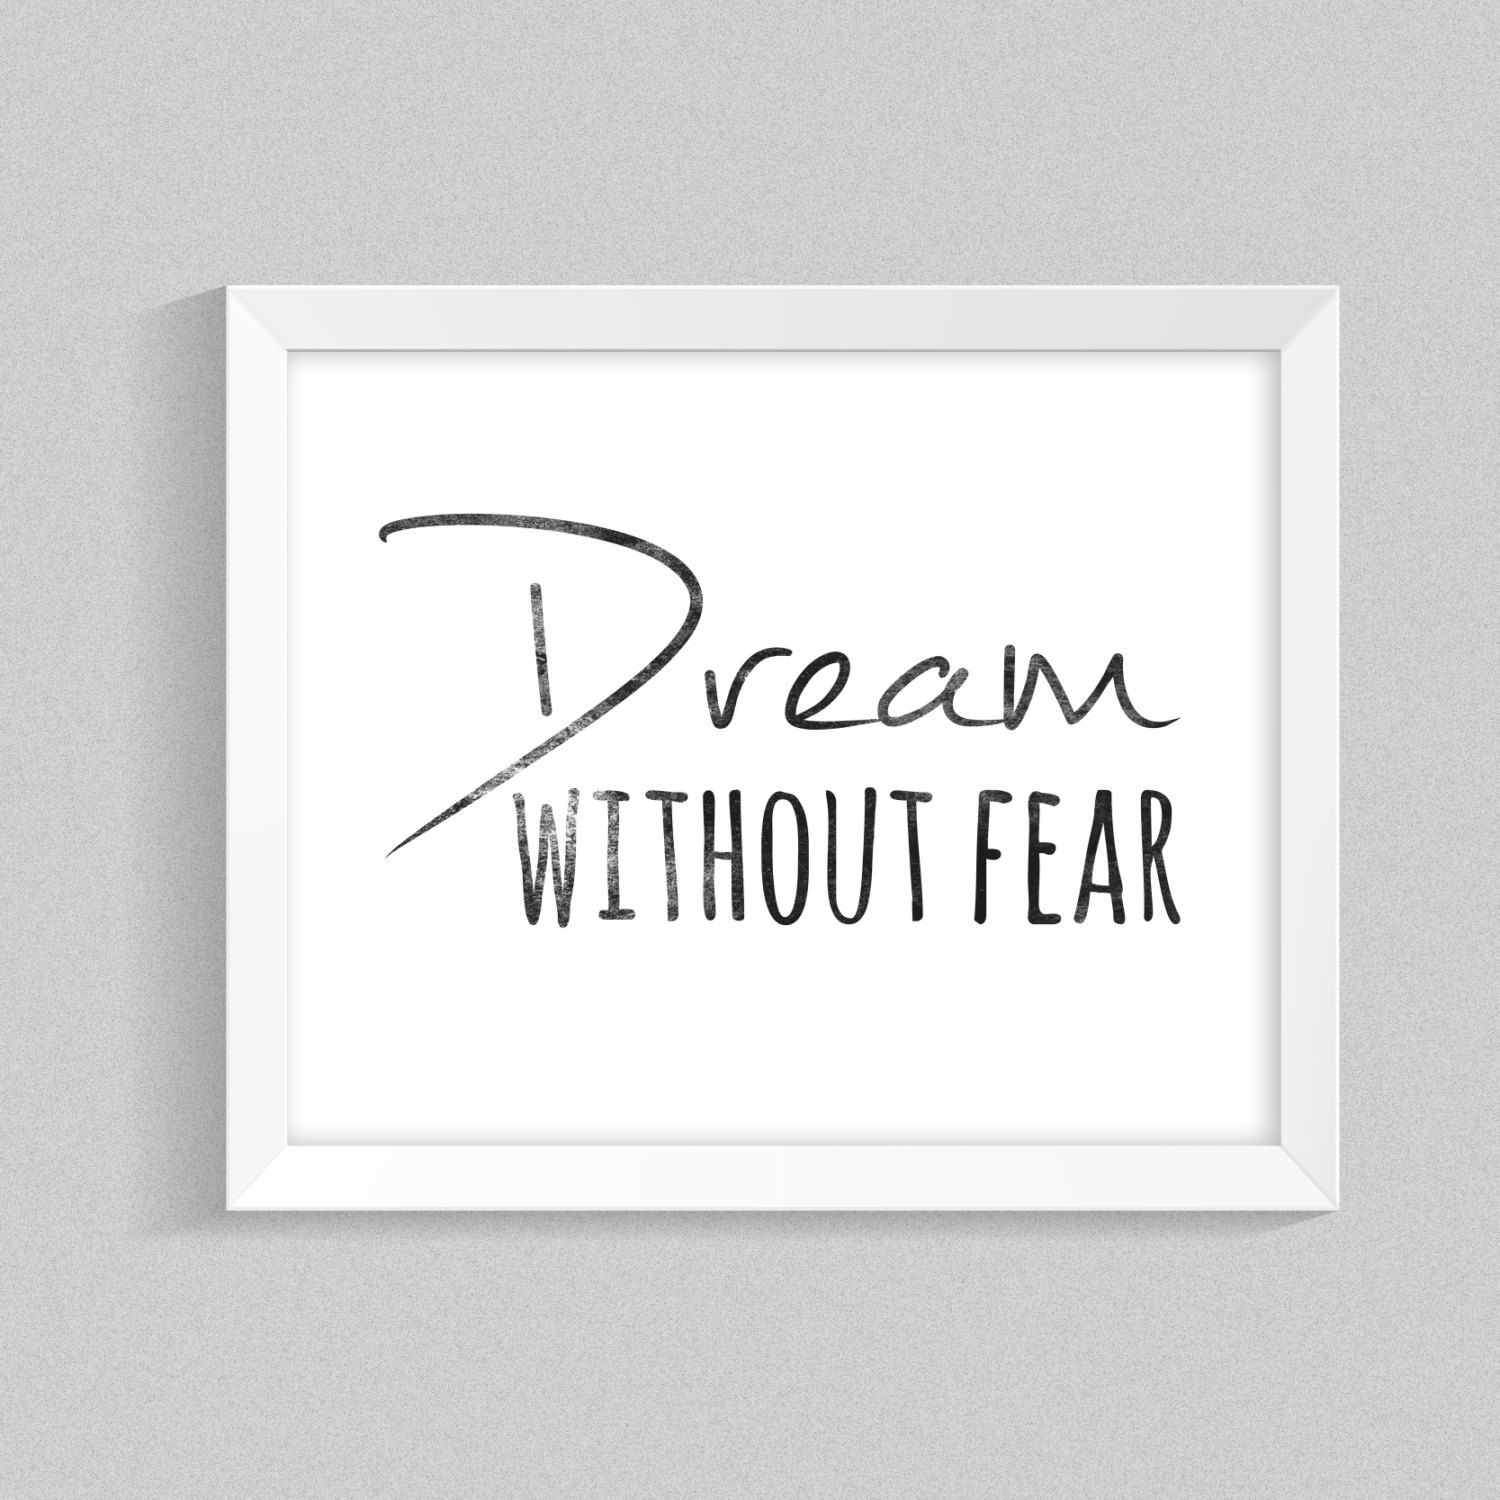 Printable Wall Art For Living Room: Motivational Wall Art, Printable Quote, Black And White